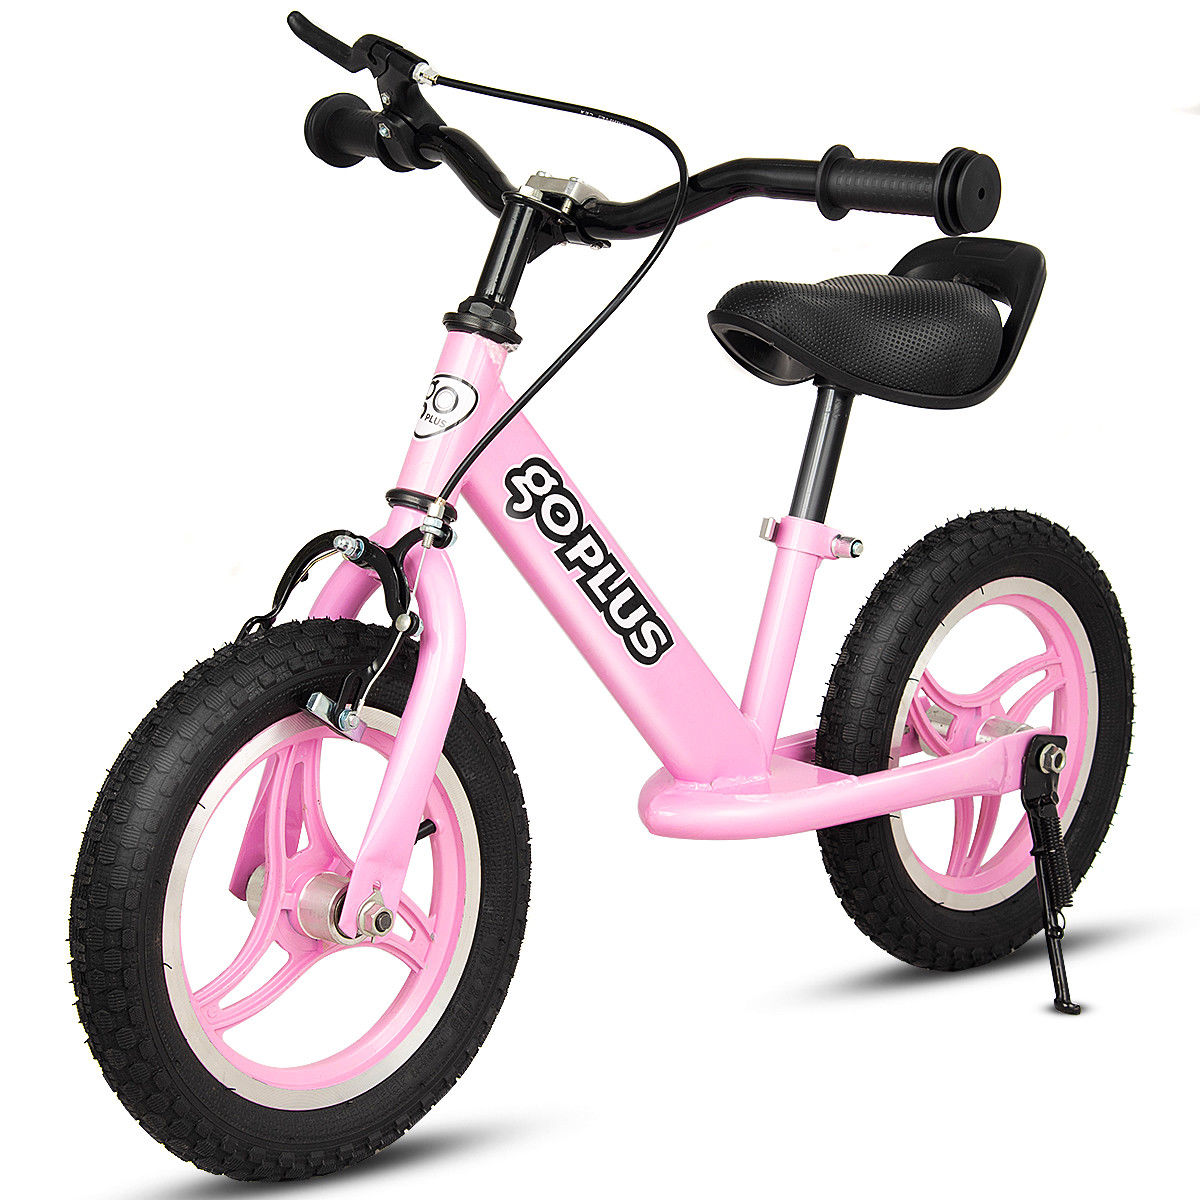 Goplus 12'' Kids Balance Bike W/ Kickstand Brake Cycling Outdoor Sports Learn To Ride